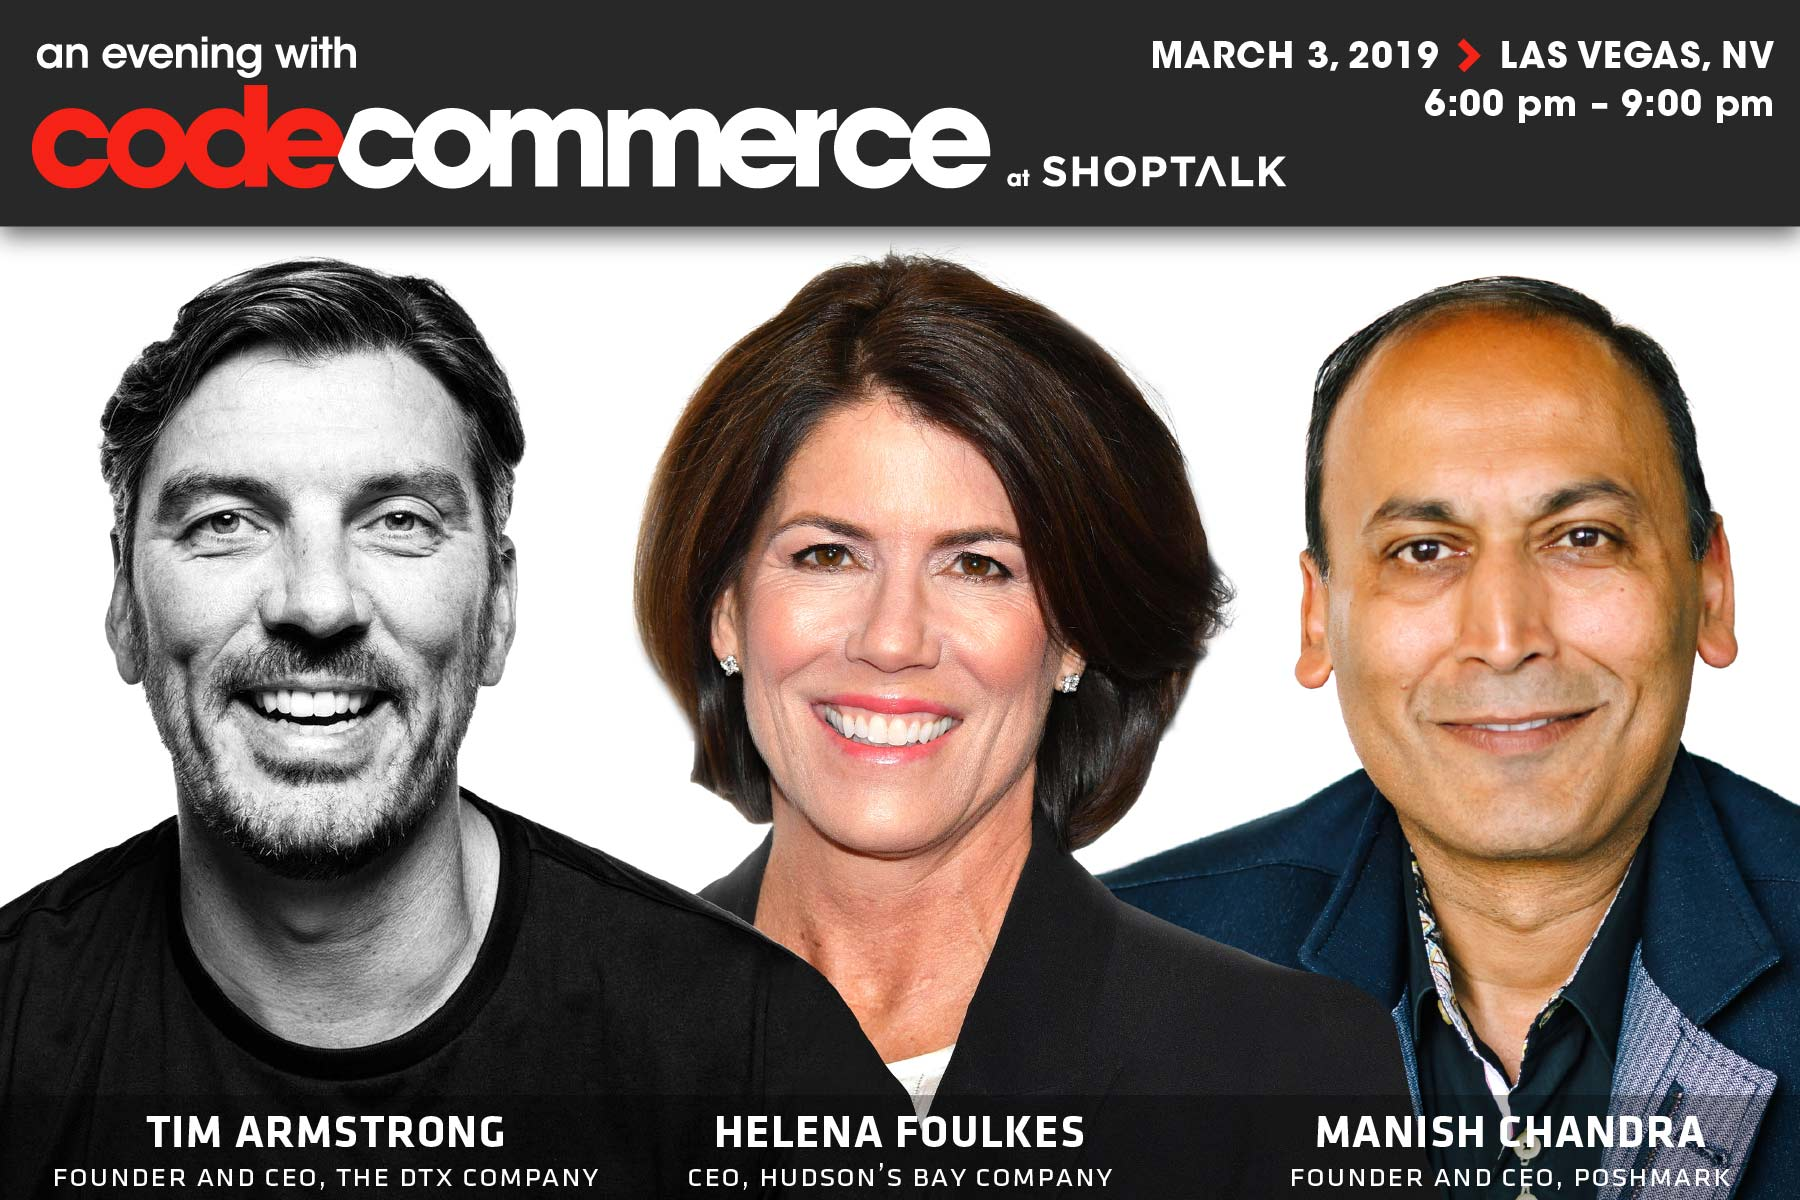 Tim Armstrong, Helena Foulkes, and Manish Chandra will be the guests at Code Commerce at Shoptalk in Las Vegas on March 3.